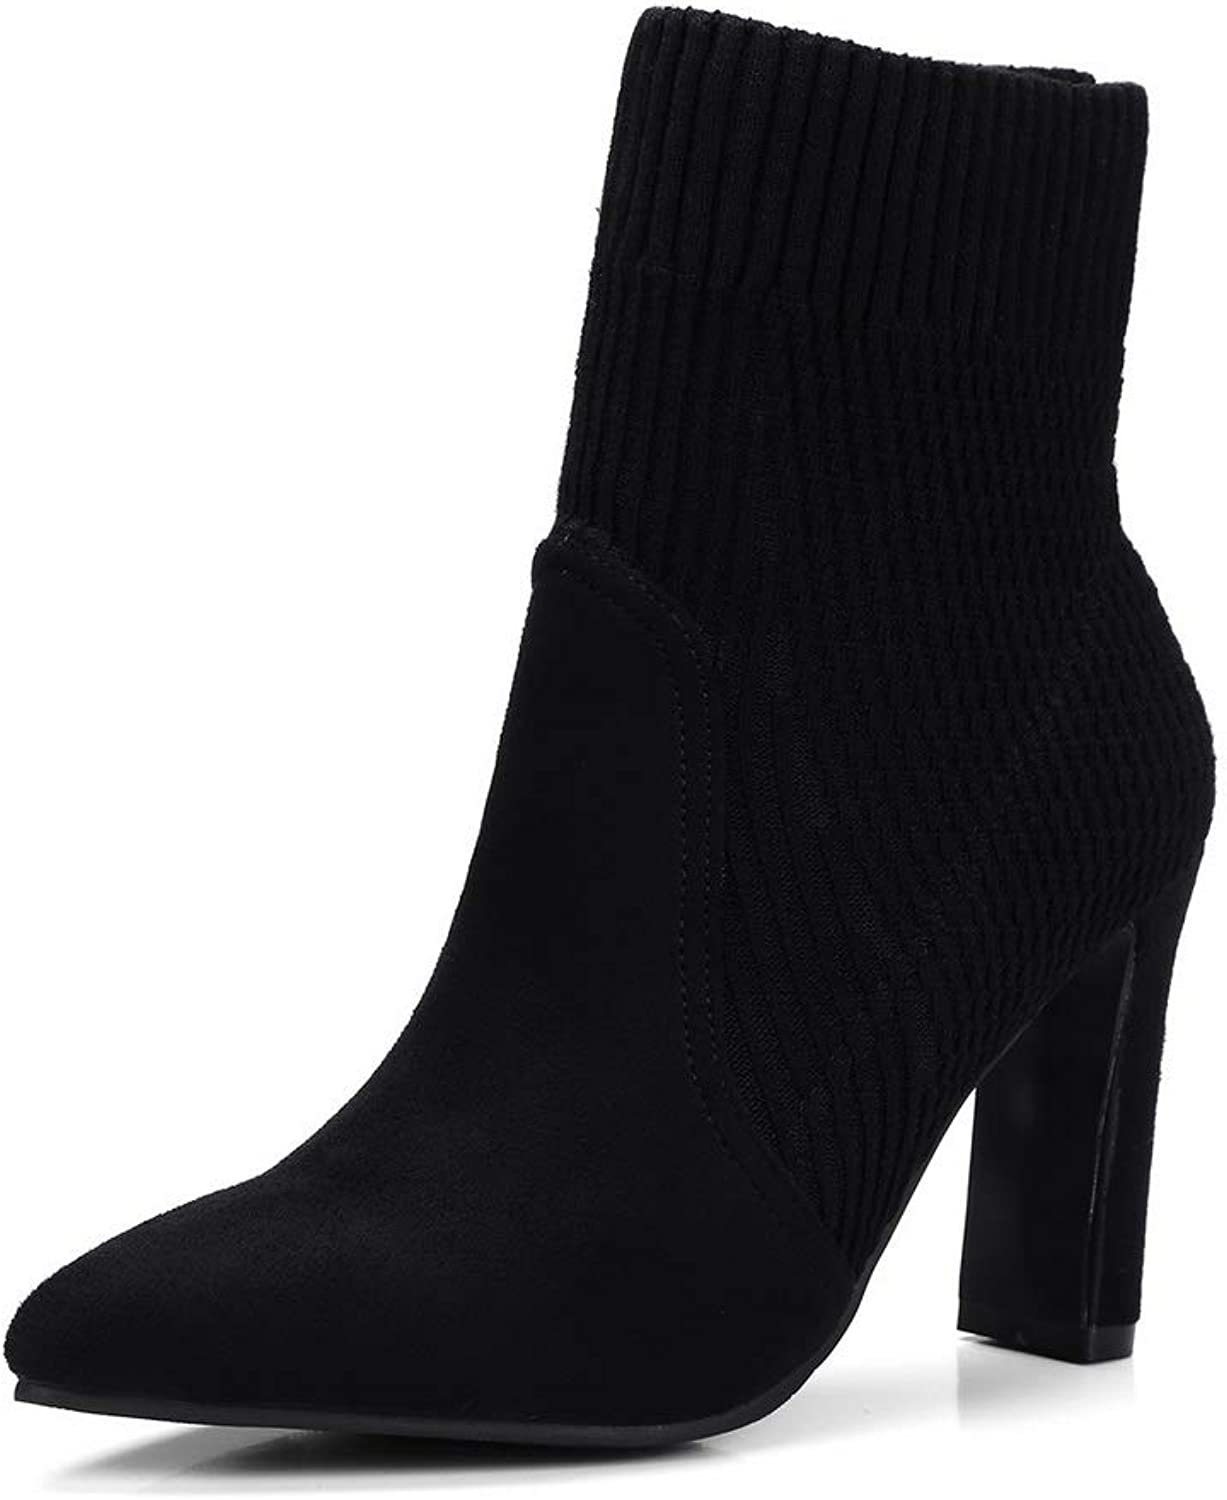 AN Womens Cone-Shape Heel Pointed-Toe Imitated Suede Boots DKU02358